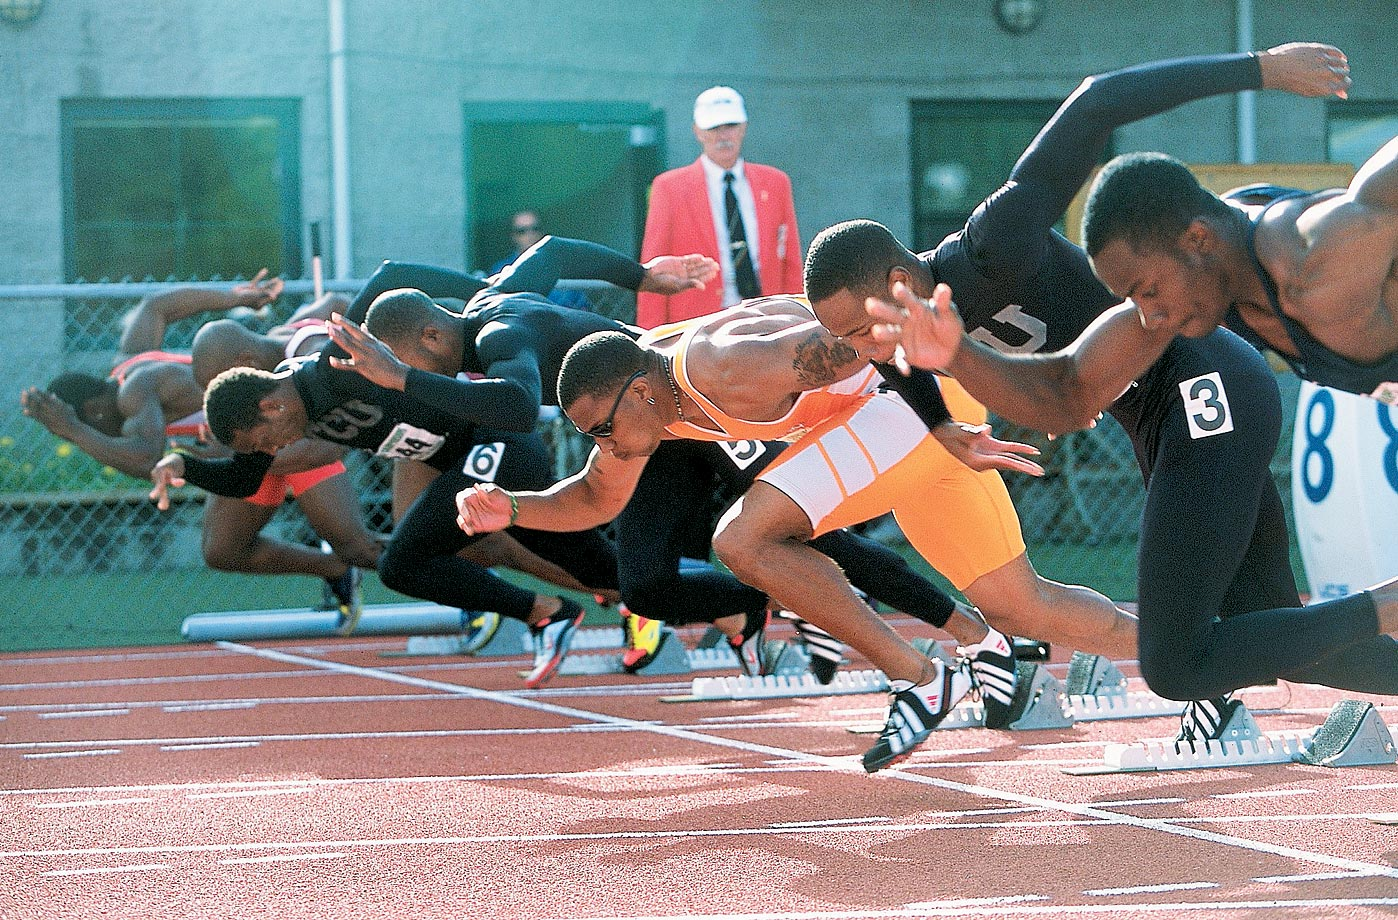 NCAA Track & Field Championships in 2001.